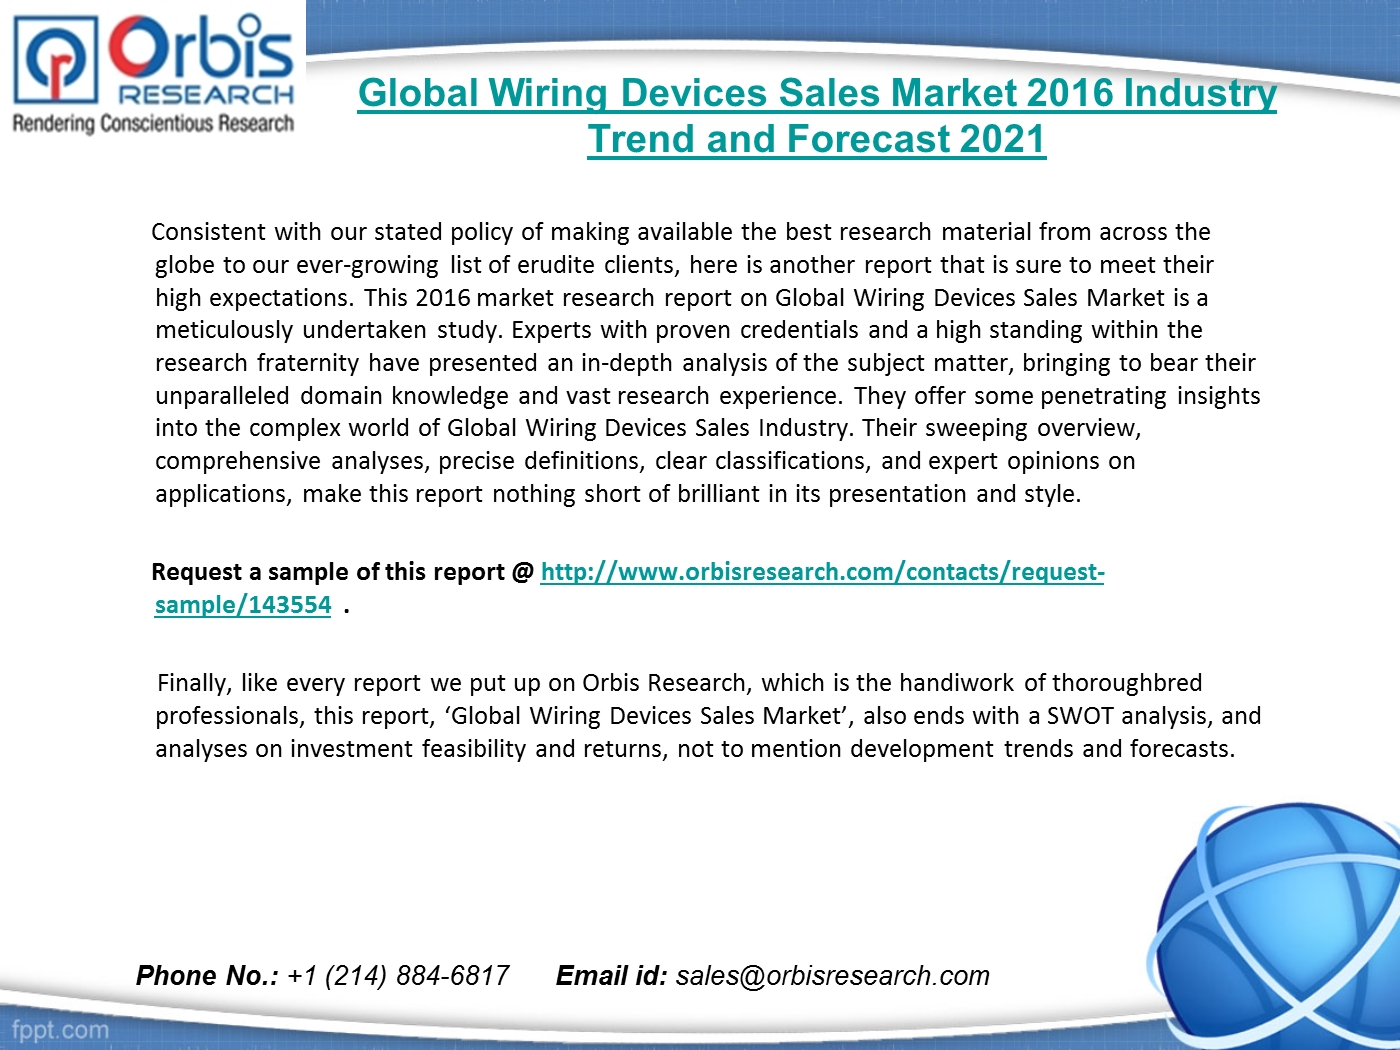 global wiring devices sales industry 2016 revenue market share rh slideonline com wiring devices market in india wiring devices market size